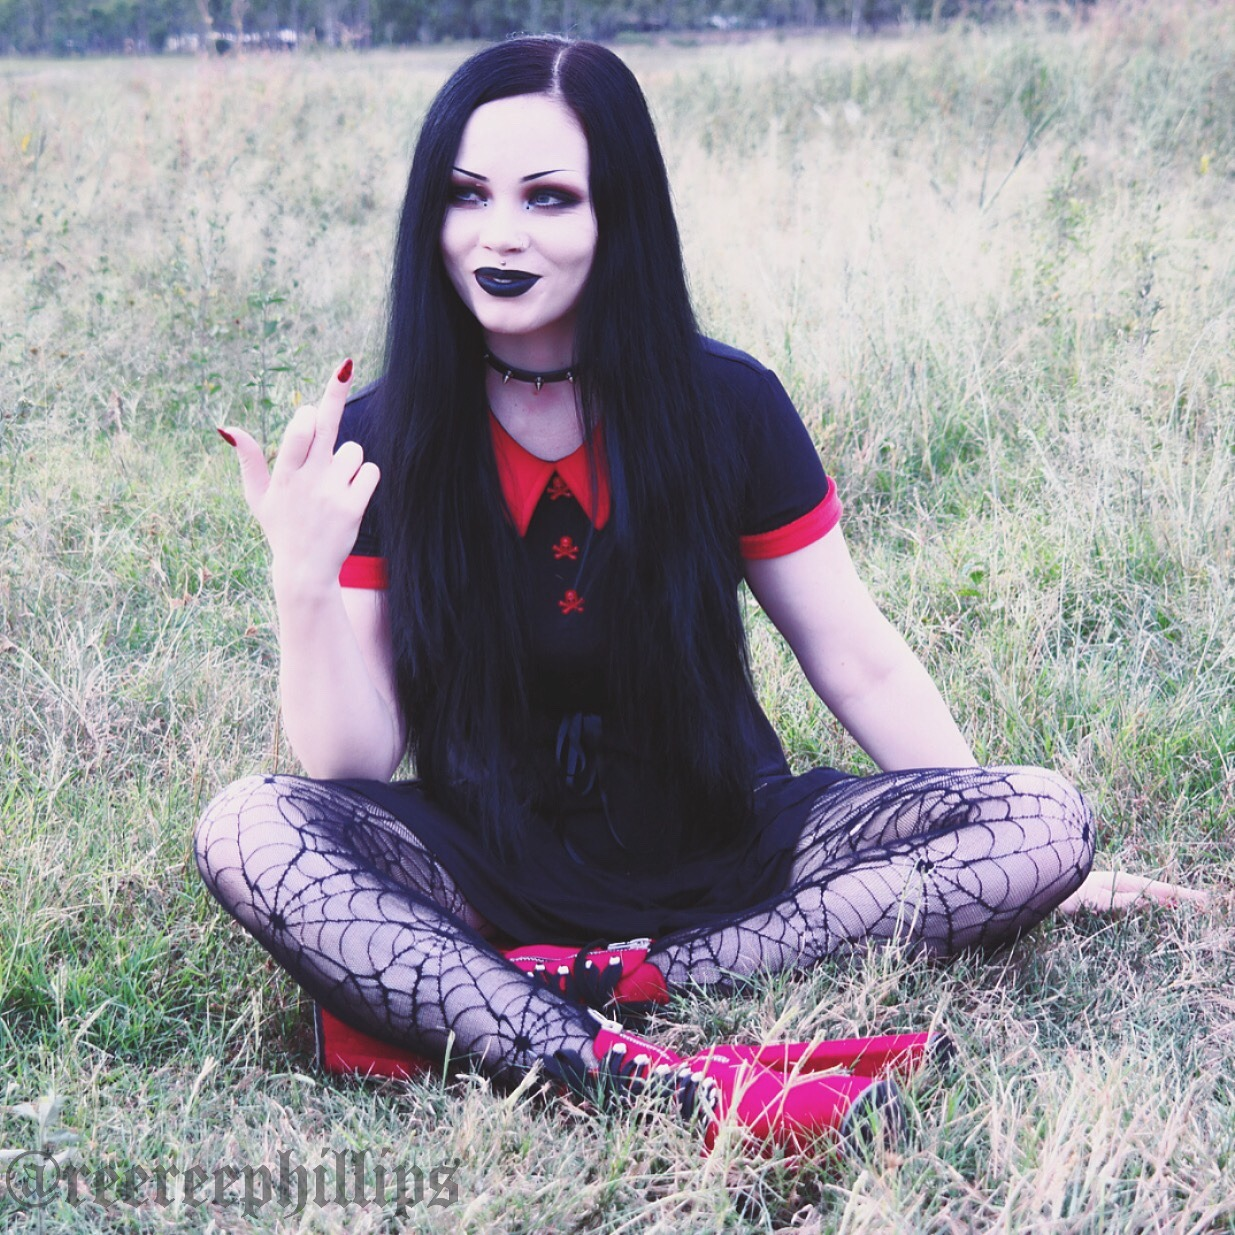 How I feel today. Bleh ☠ Outfit details are on my Instagram (ReeRee Phillips)